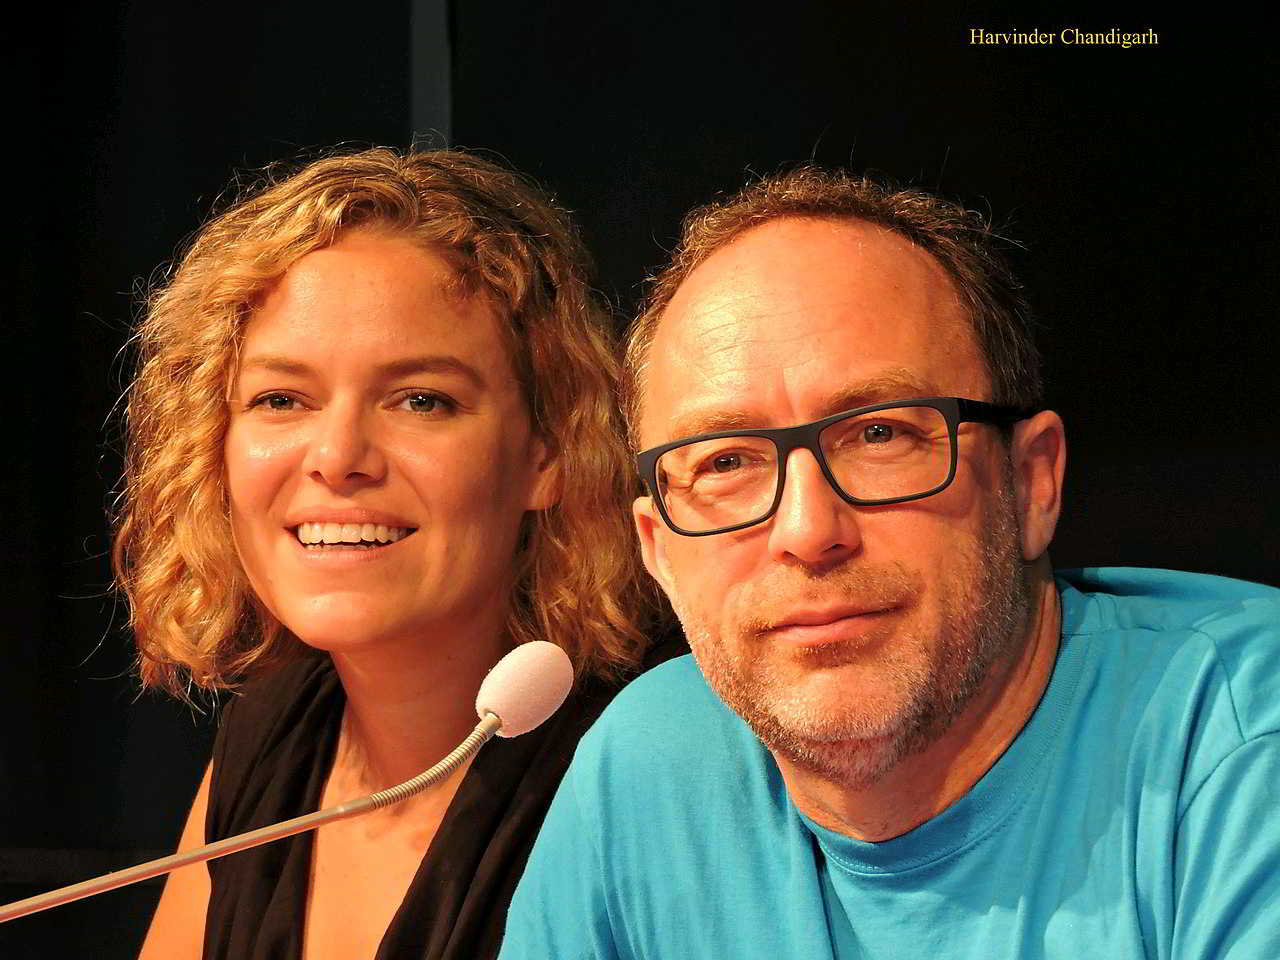 1280px-Katherine_Maher_the_executive_director_of_the_Wikimedia_Foundation_and_Jimmy_Wales_co_founder_of_Wikipedia,_in_Esino_Lario,_Italy.jpg